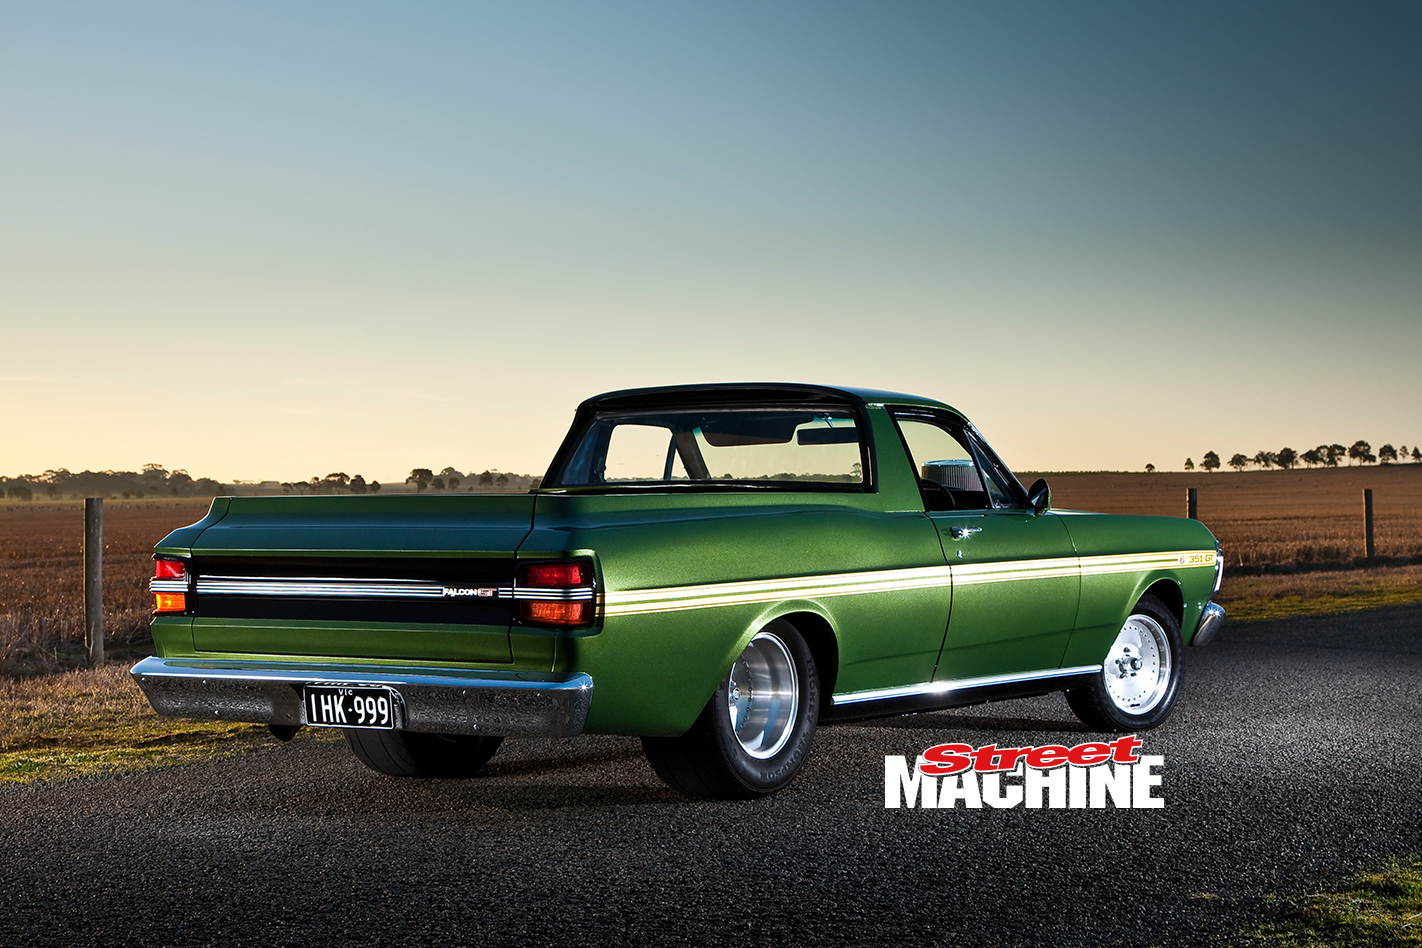 Ford XY Falcon Ute 440 6